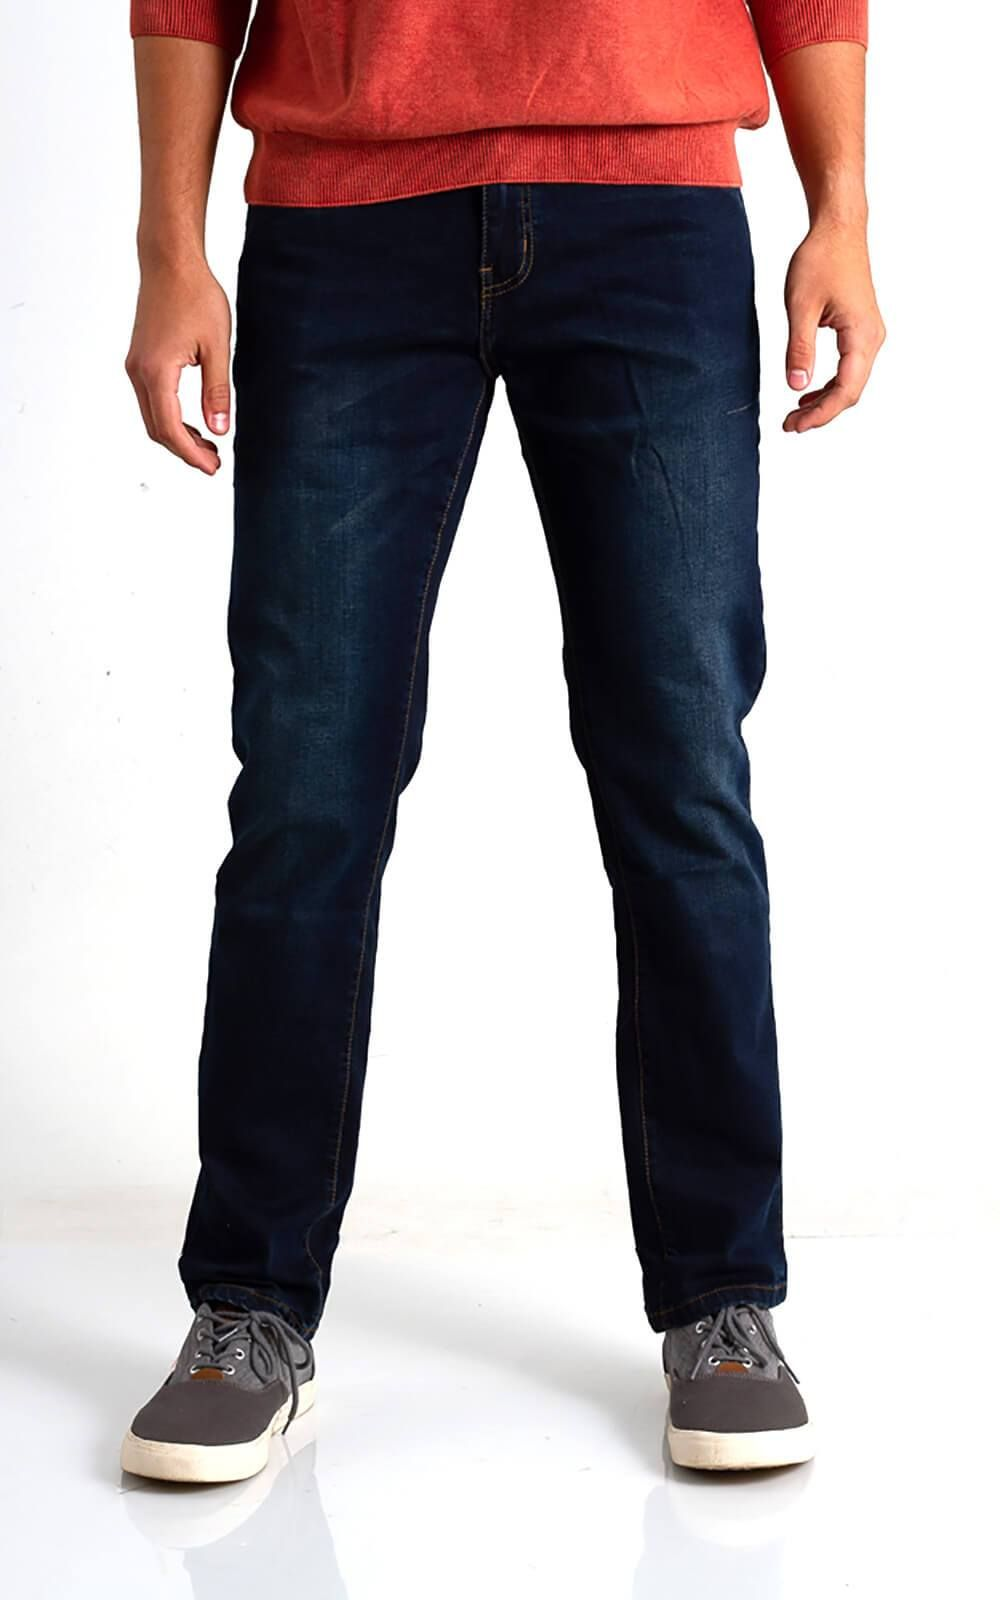 English Laundry Pailey Sutton Slim Straight Jeans For Men In Denim